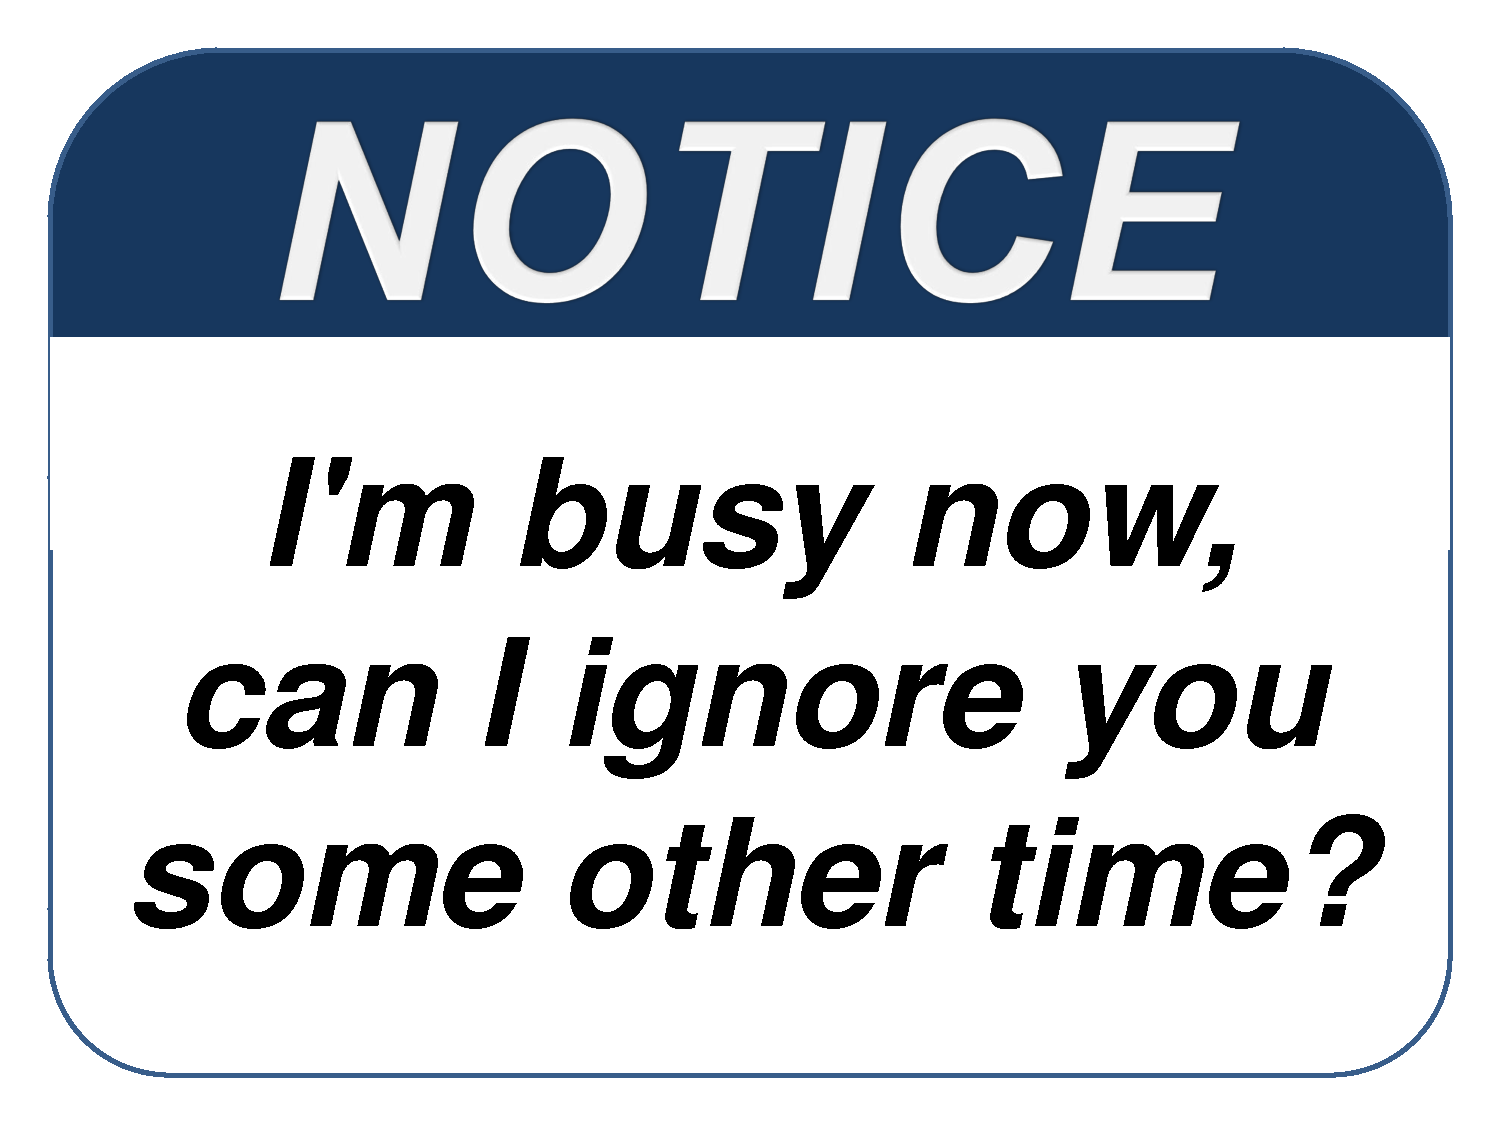 Funny Signs Spazzy Pictures The Work Place Funny Quotes Sarcastic Quotes Funny Sarcastic Quotes